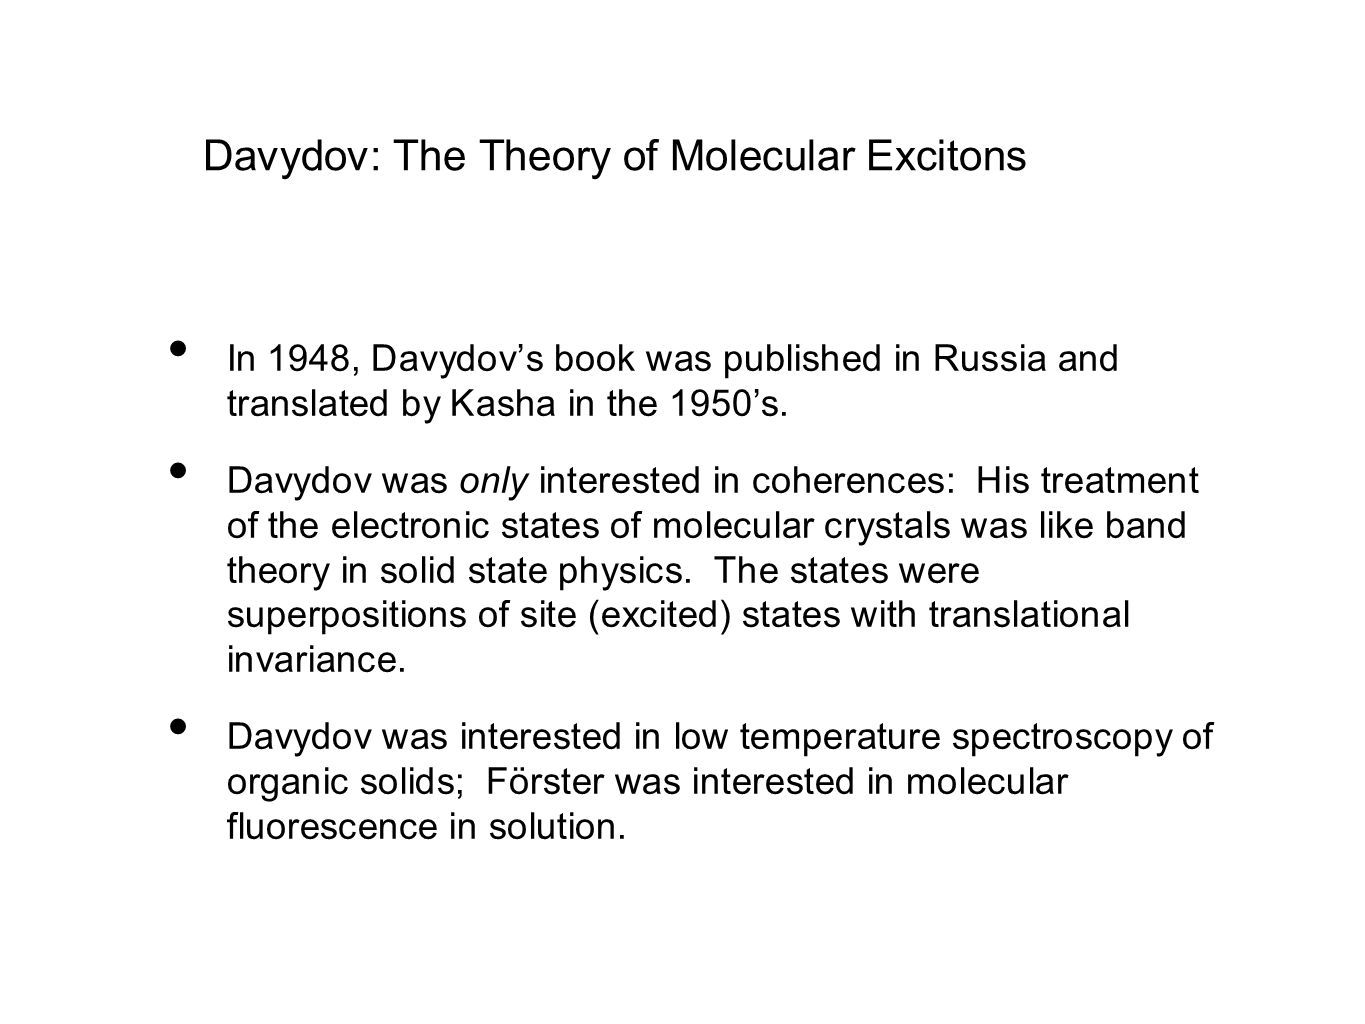 Davydov: The Theory of Molecular Excitons In 1948, Davydov's book was published in Russia and translated by Kasha in the 1950's.